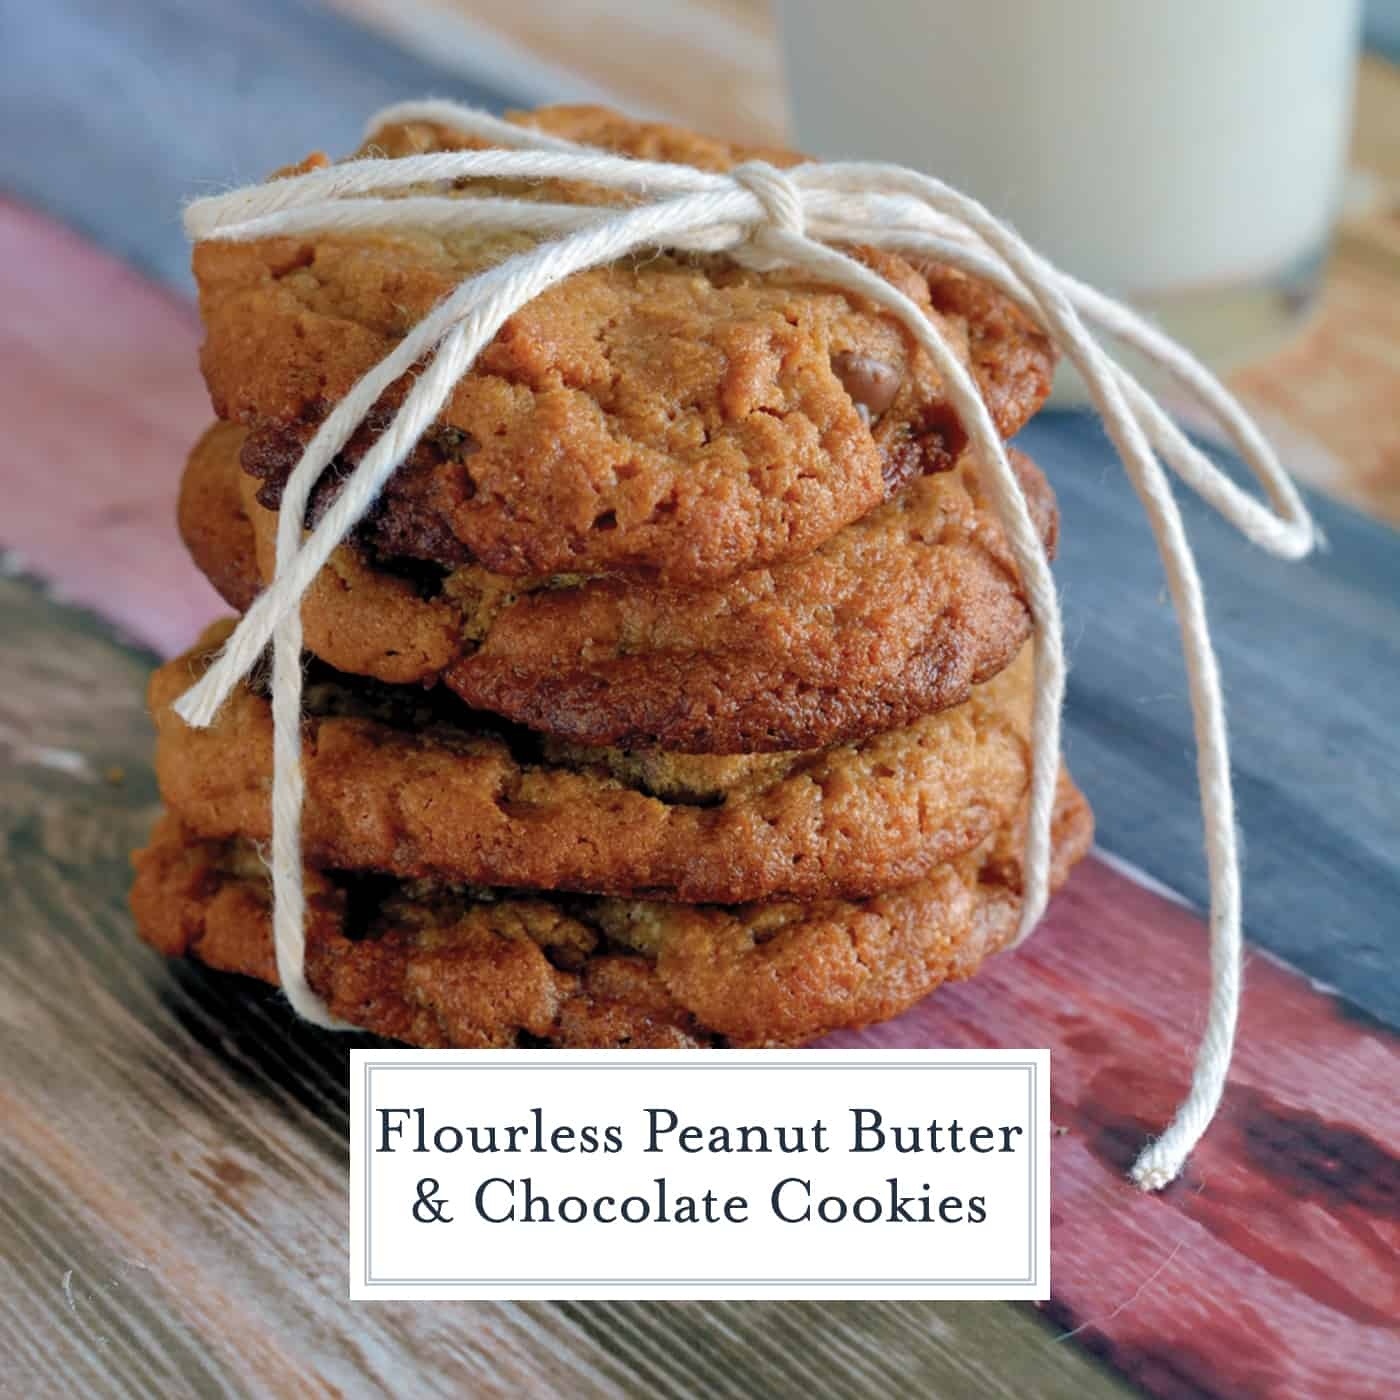 Flourless Peanut Butter Chocolate Chip Cookies are gluten-free and easy to make! A twist on classic peanut butter cookies. #flourlesscookies #glutenfreecookies www.savoryexperiments.com